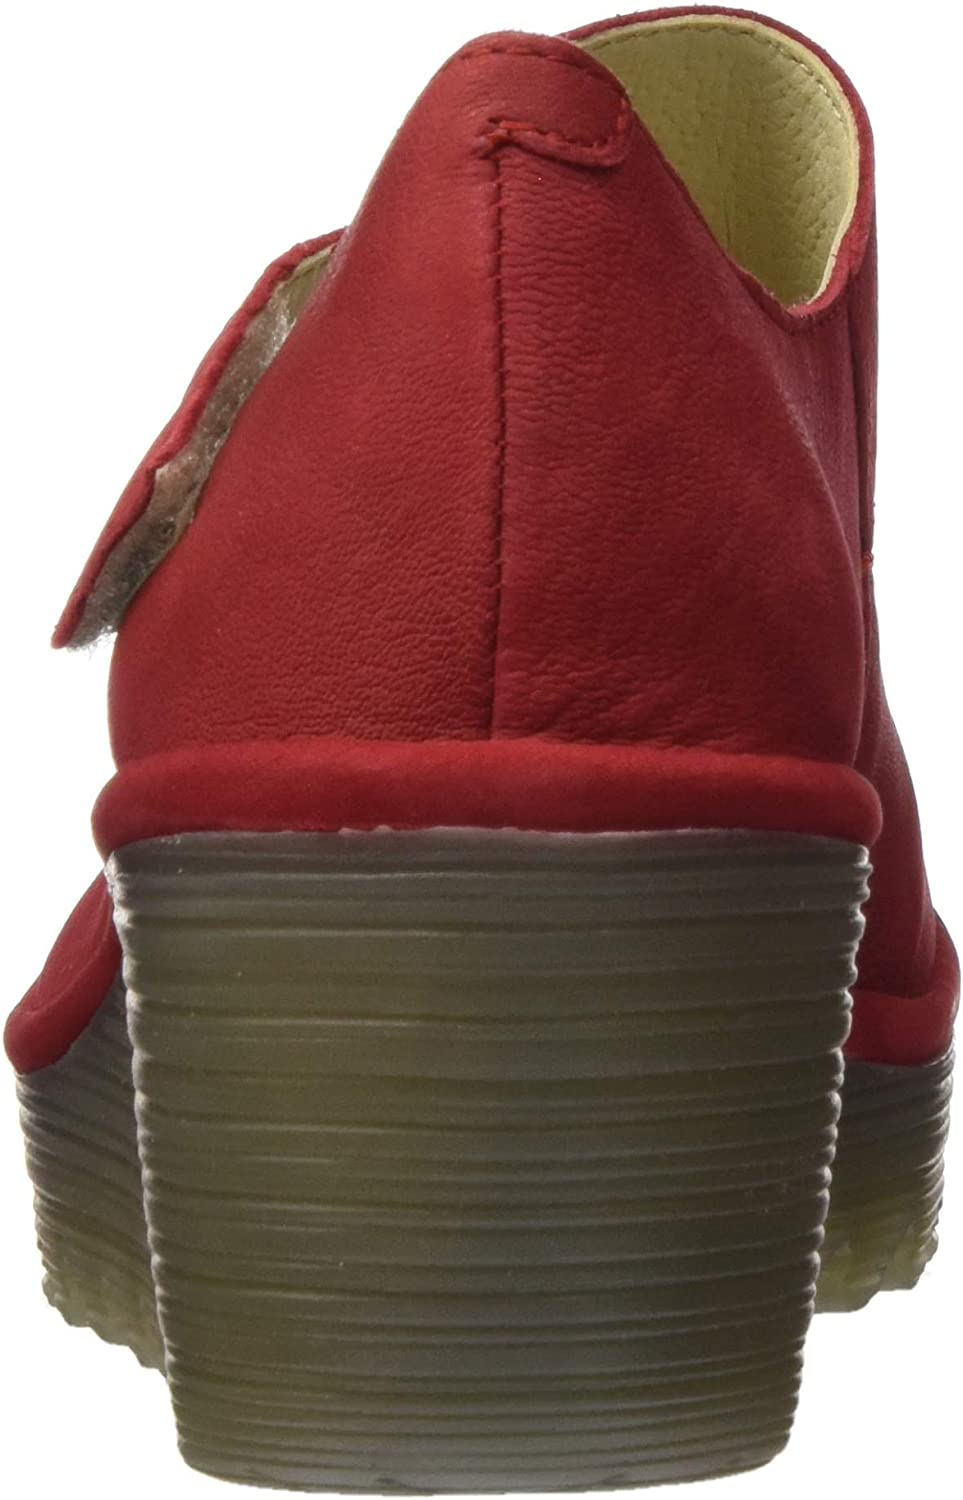 Fly London Yasi682fly, Scarpe col Tacco Punta Chiusa Donna Rosso Lipstick Red 040